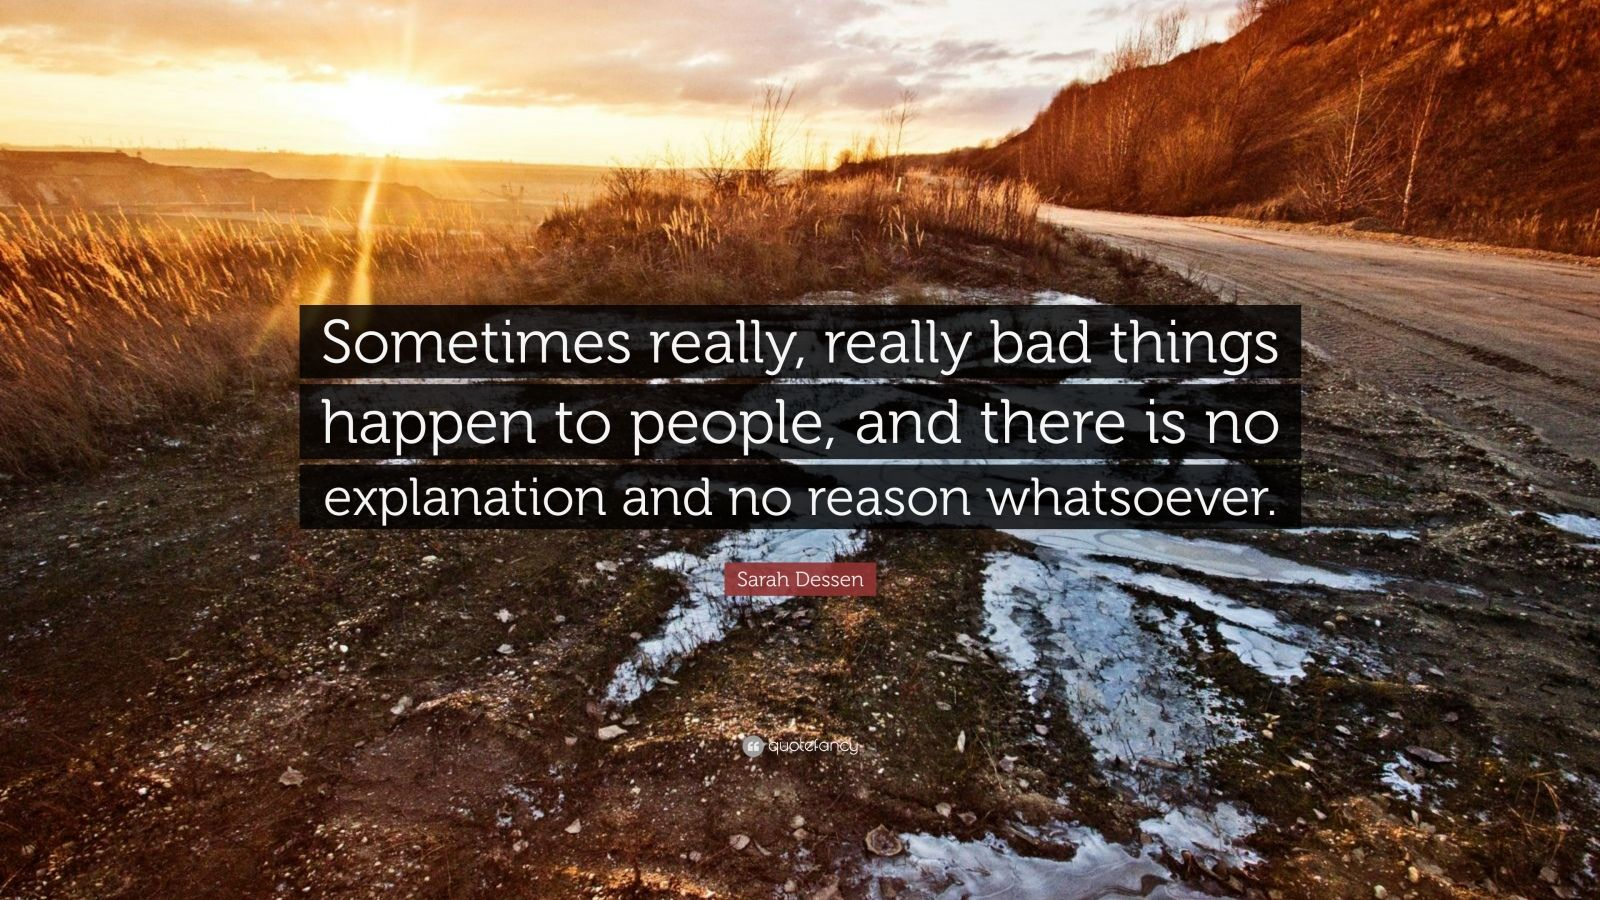 """Sarah Dessen Quote: """"Sometimes really, really bad things happen to people, and there is no explanation and no reason whatsoever."""""""